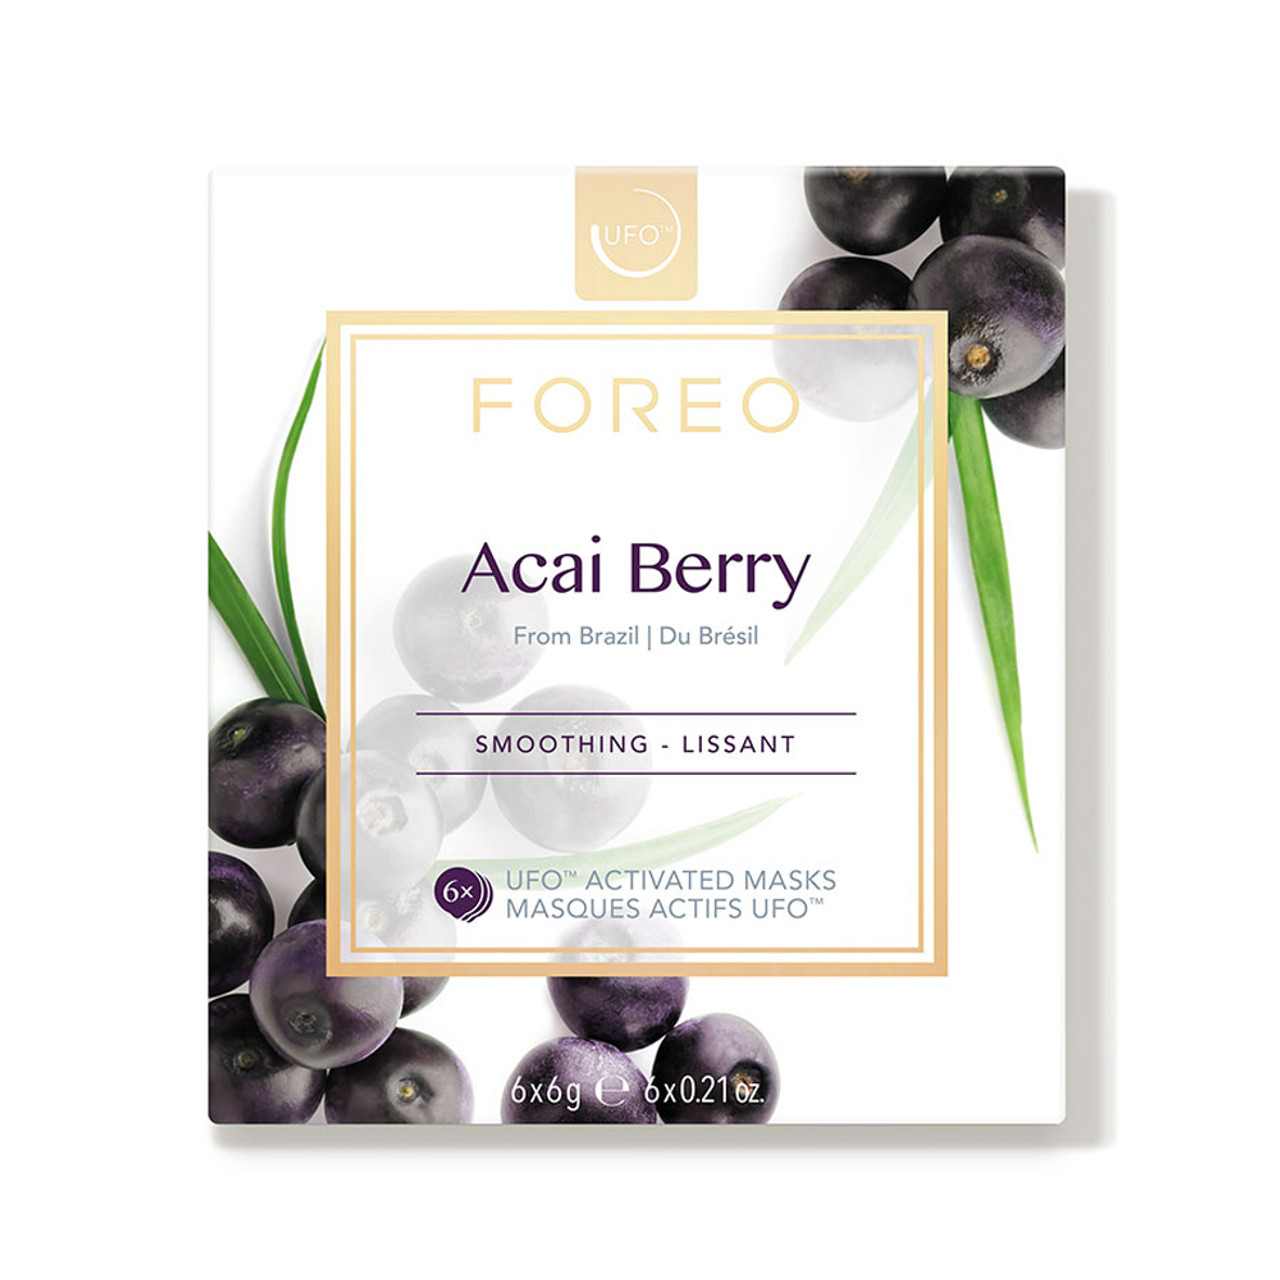 Foreo UFO Activated Masks - Acai Berry (6-Pk)